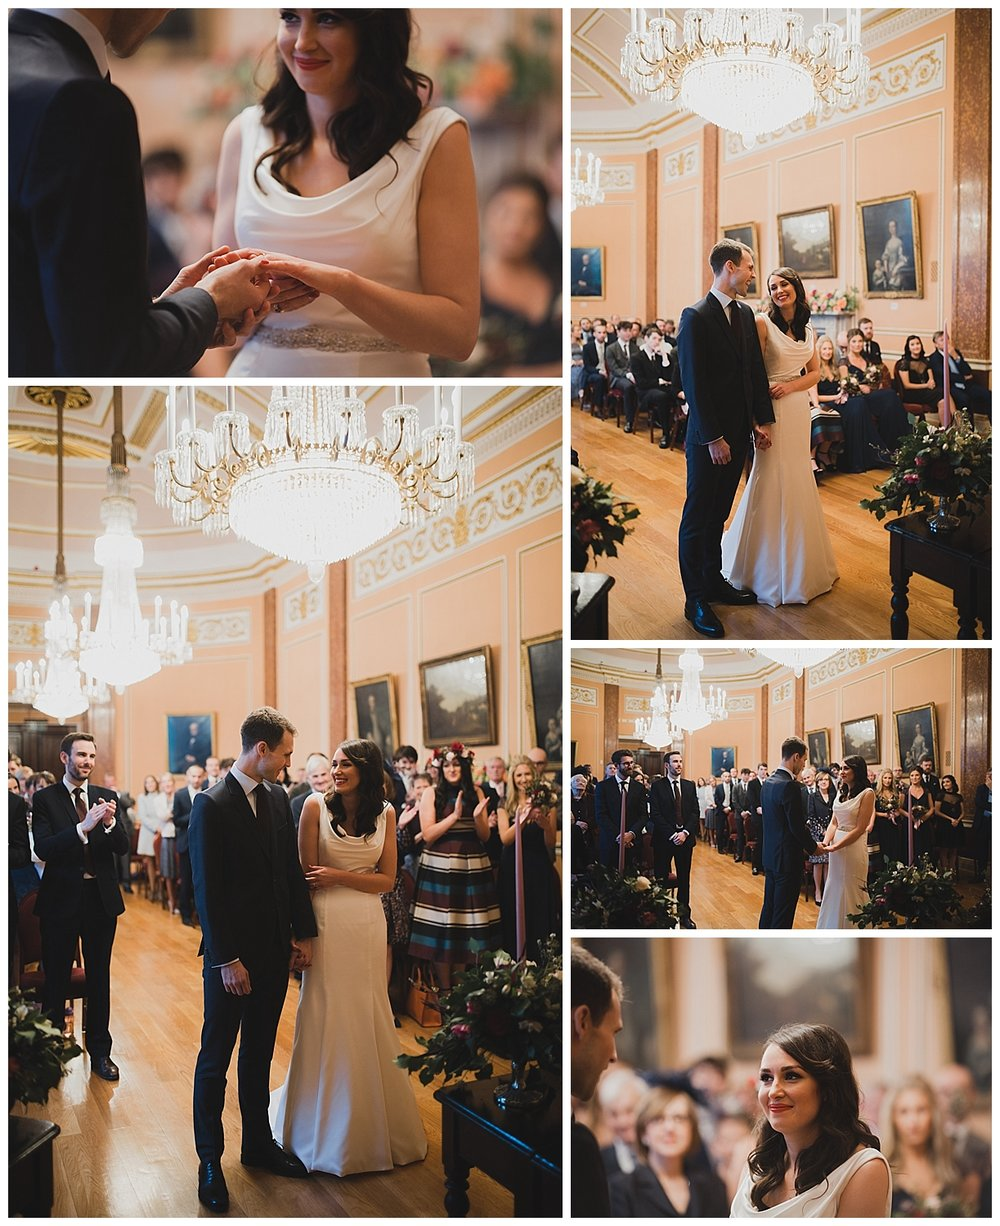 Liverpool Town Hall wedding.